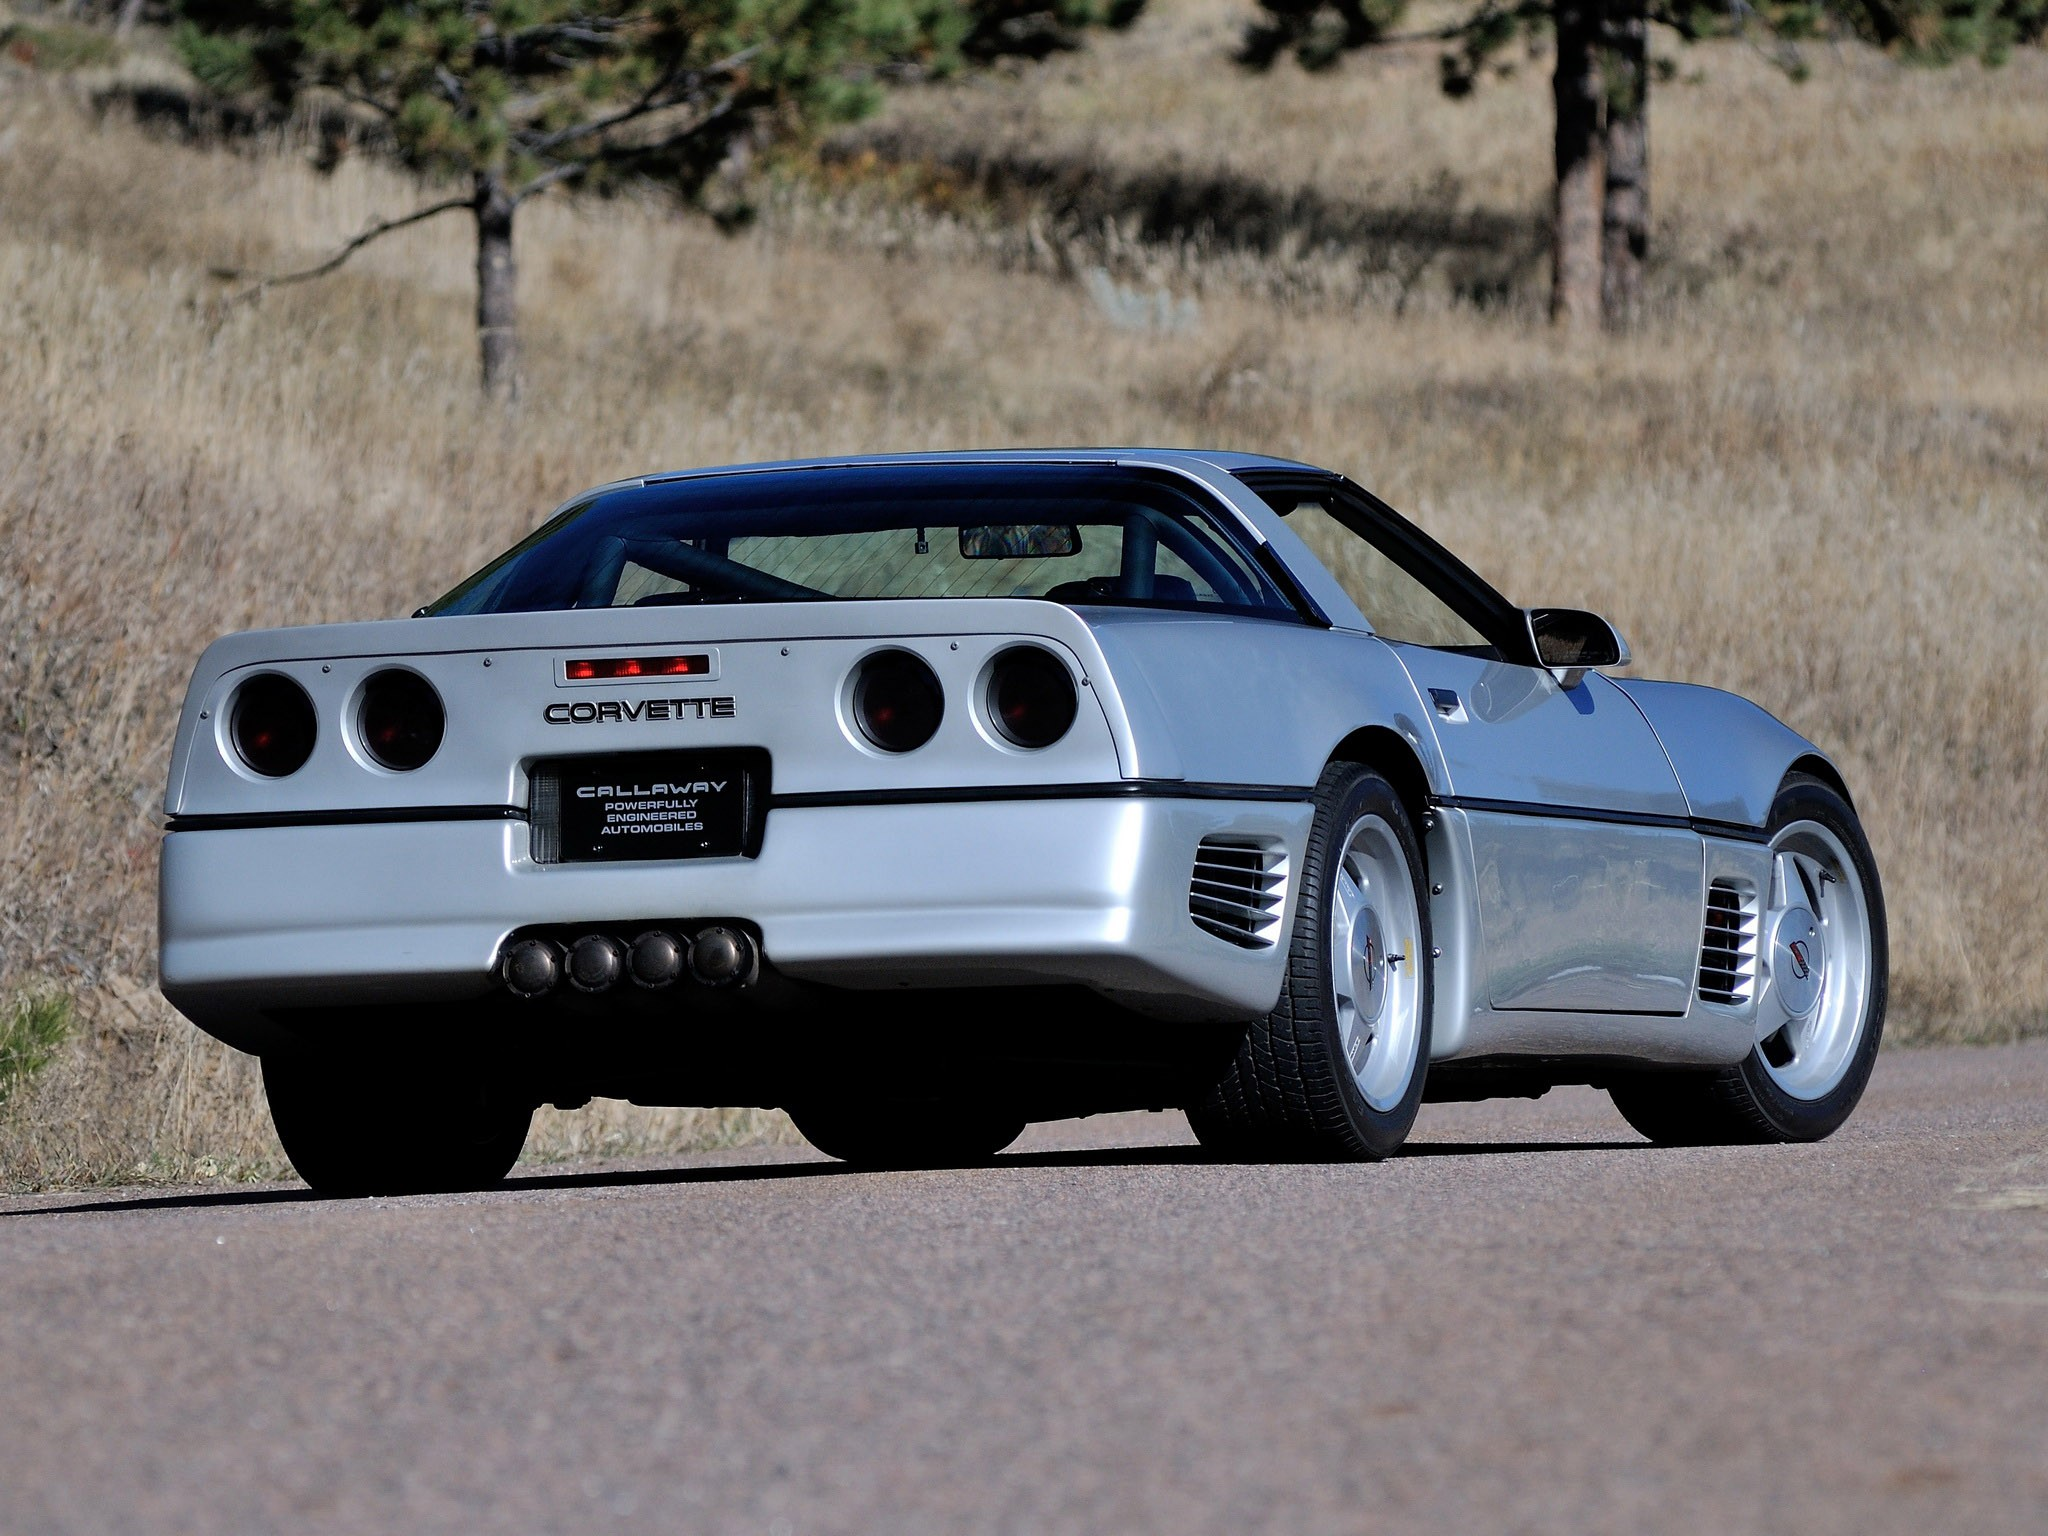 1988 Callaway Chevrolet Corvette C4 Twin Turbo Sledgehammer